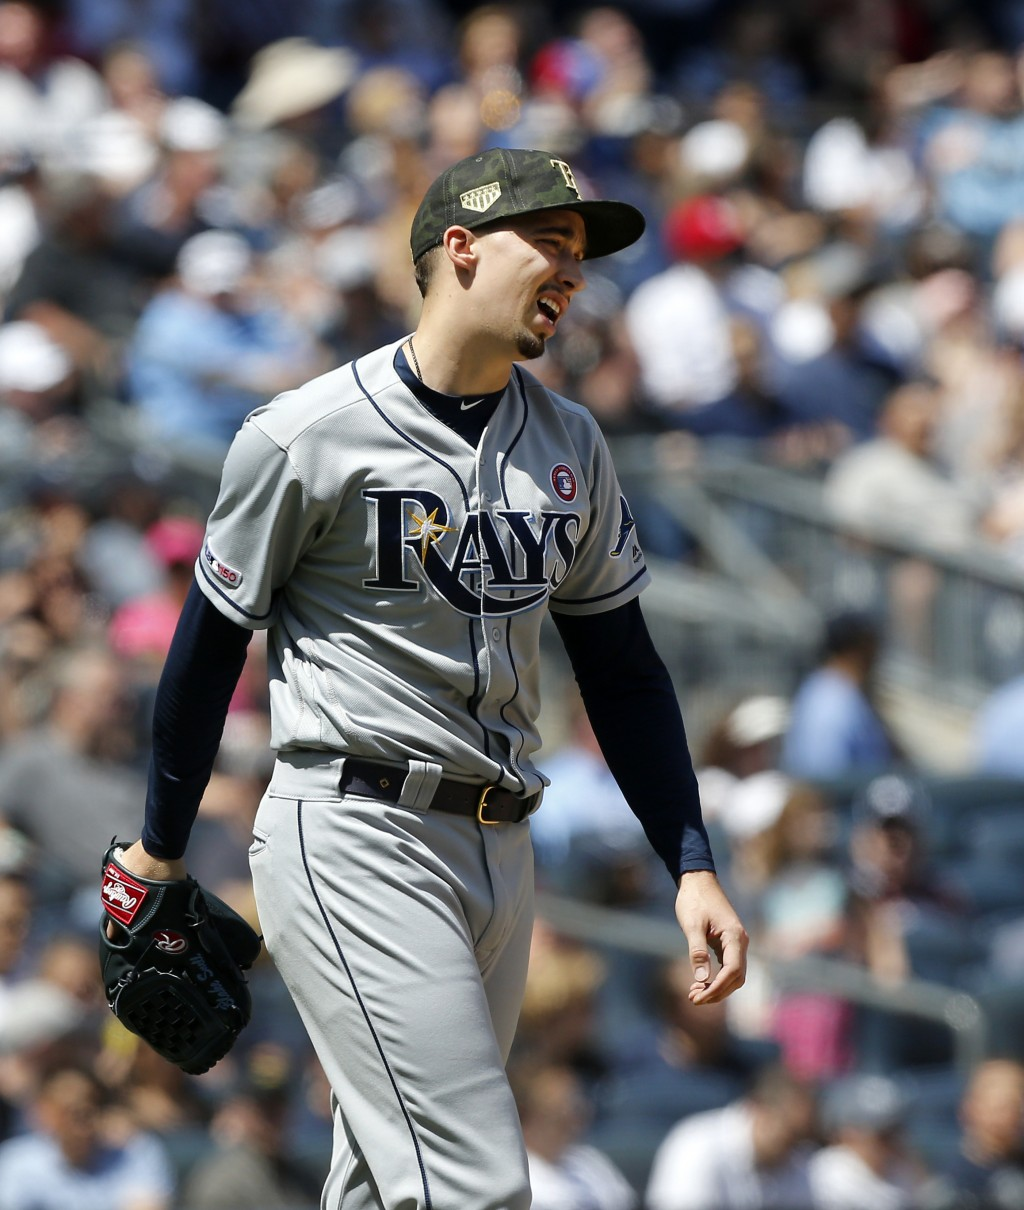 Tampa Bay Rays starting pitcher Blake Snell reacts after walking New York Yankees' Luke Voit to load the bases in the third inning of a baseball game,